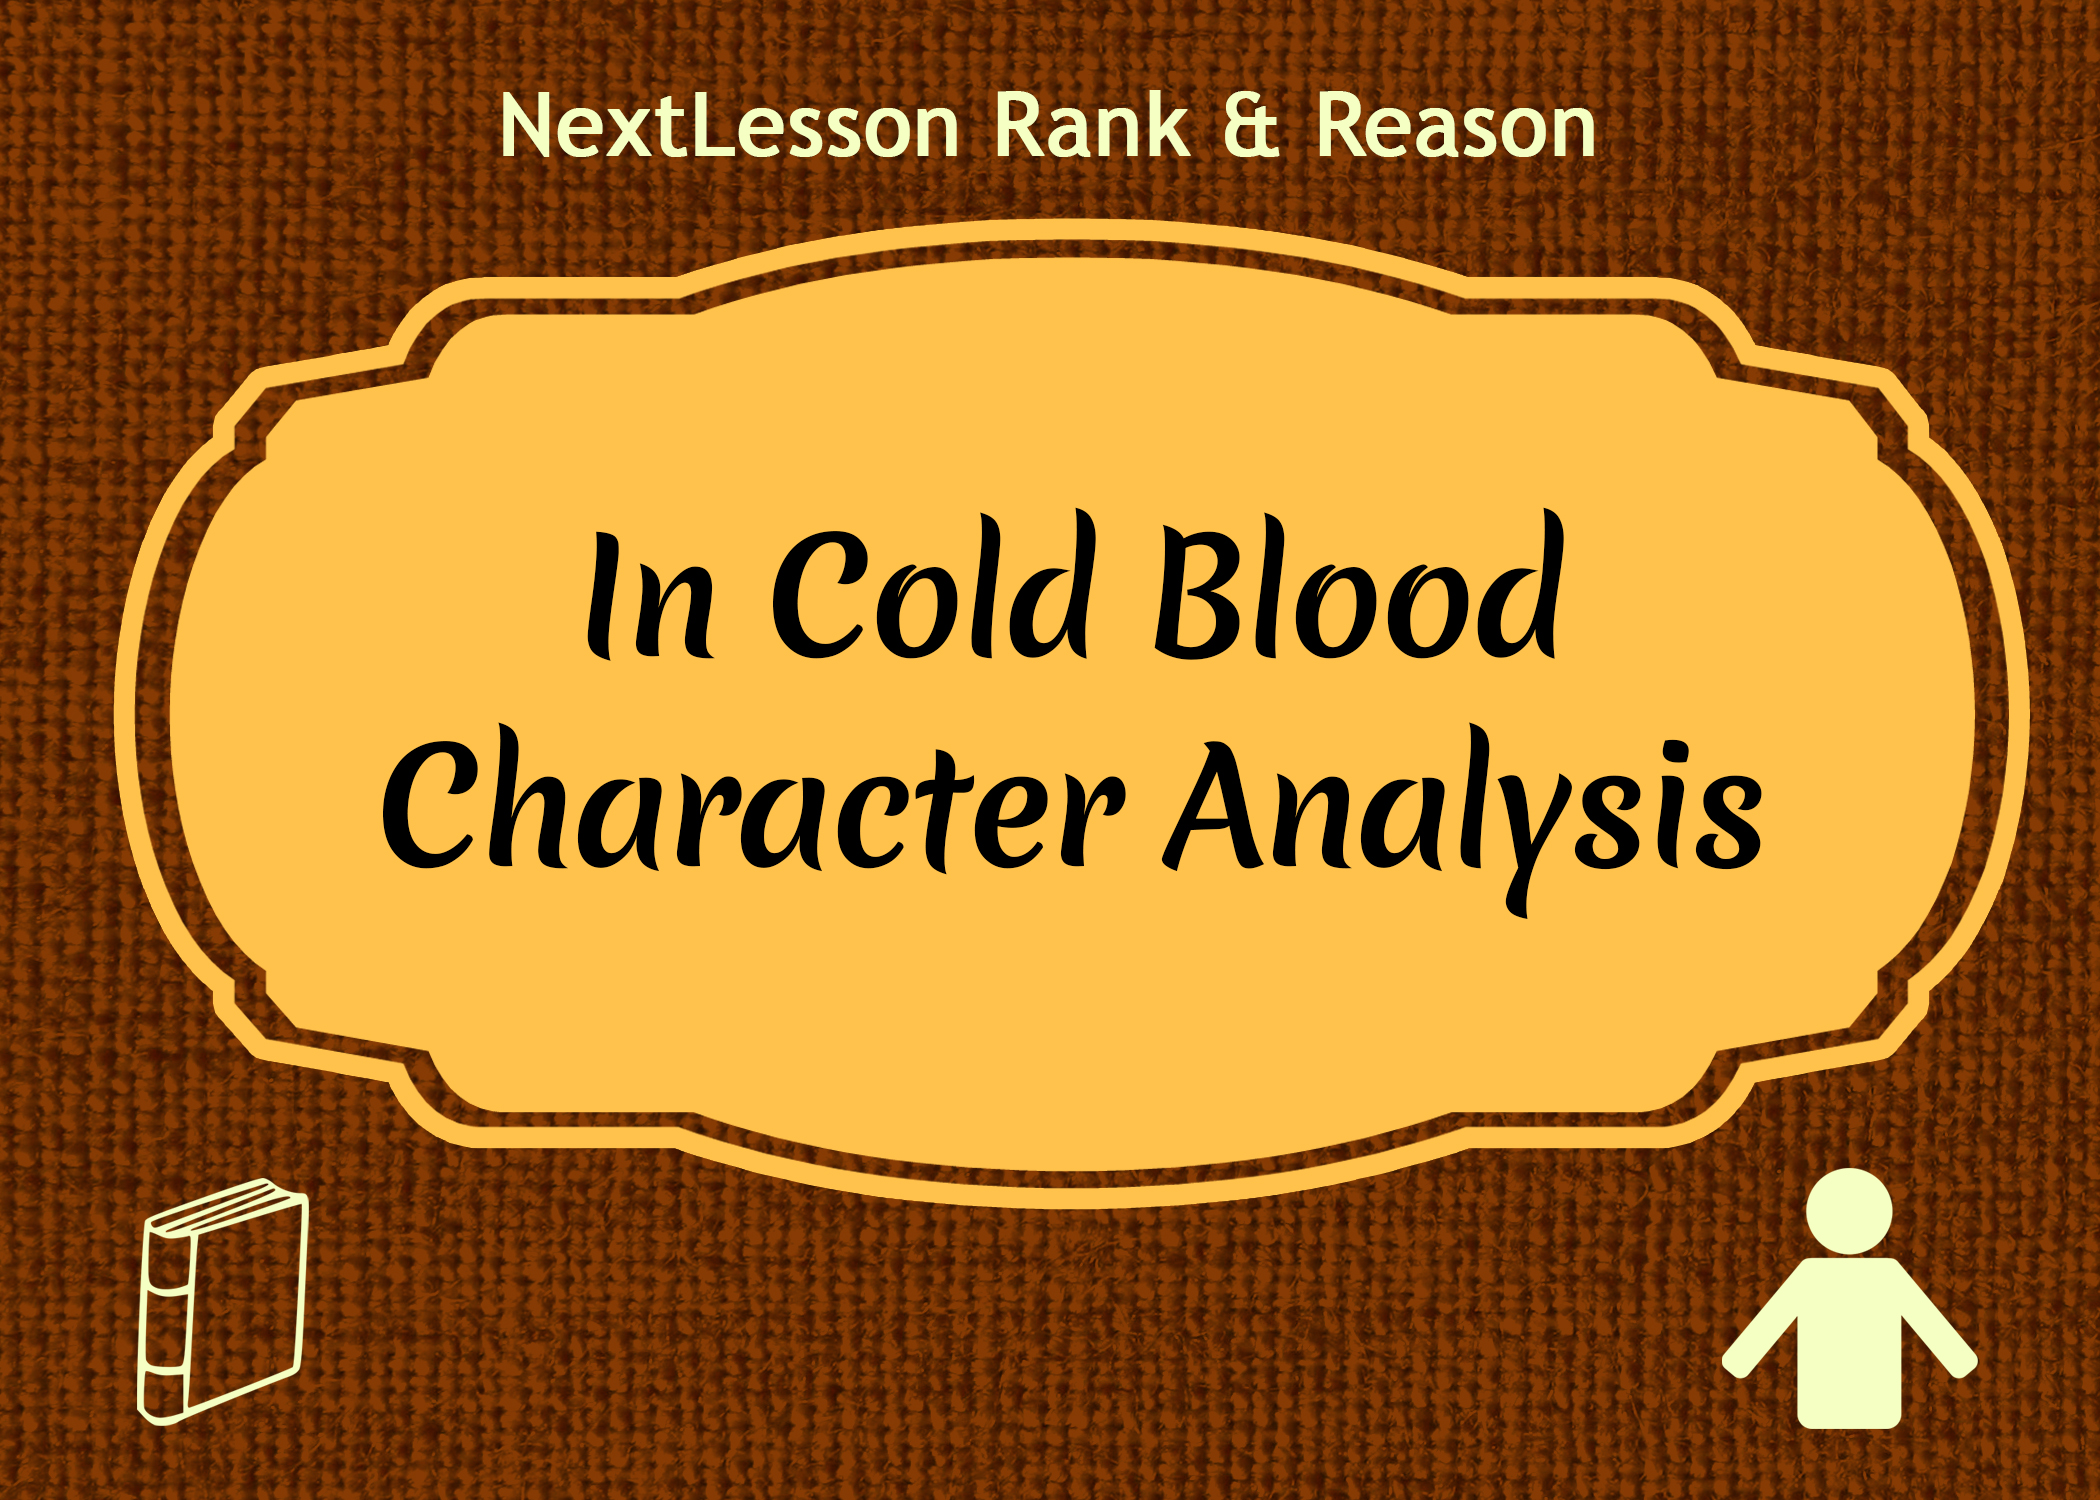 in cold blood analysis essay paper writing services scams truman capotes non fiction novel in cold blood closely follows the murder of the clutter family and the thoughts emotions and consequences faced by their